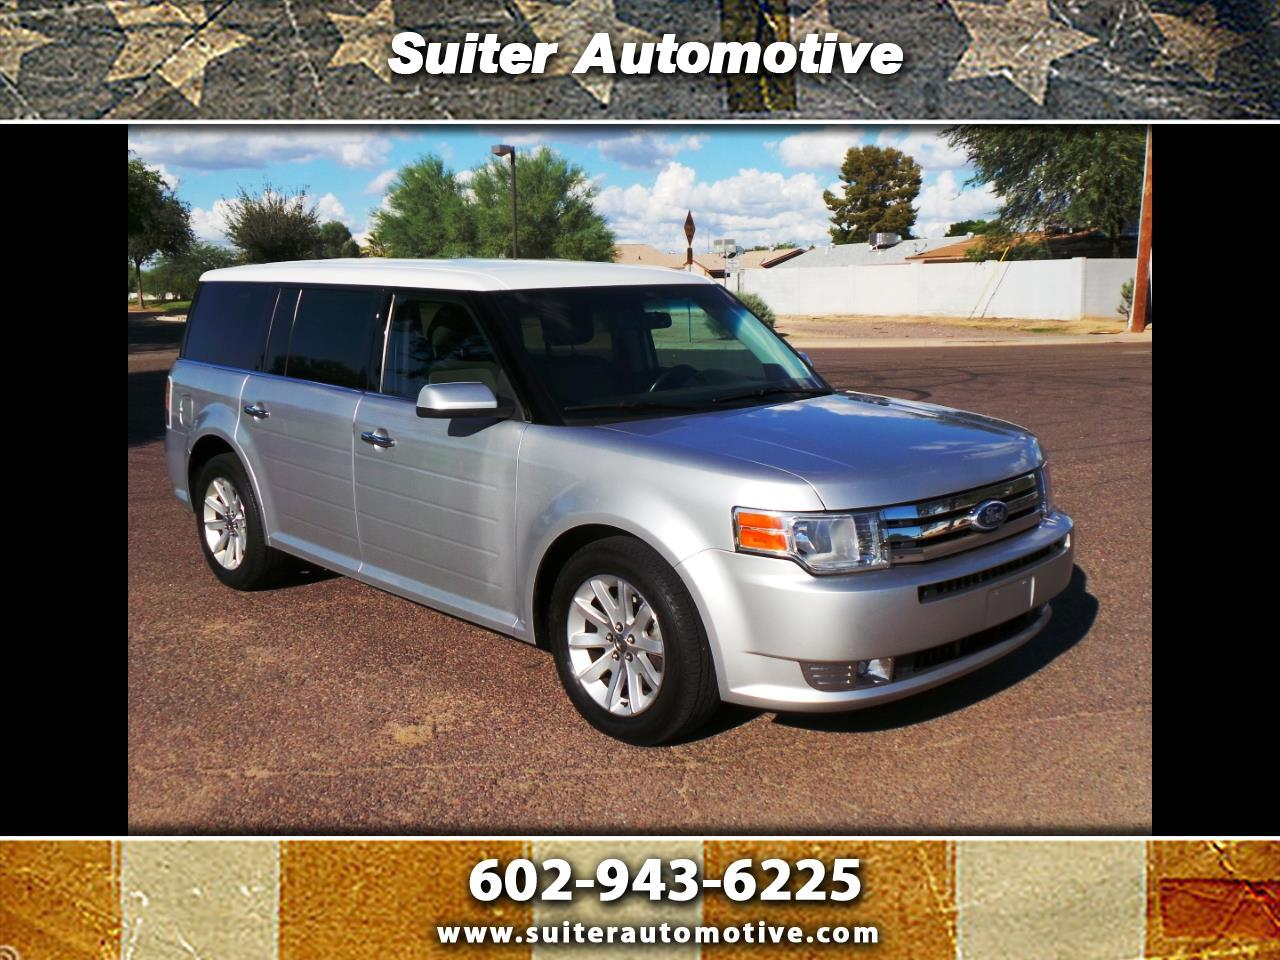 2012 Ford Flex SEL AWD